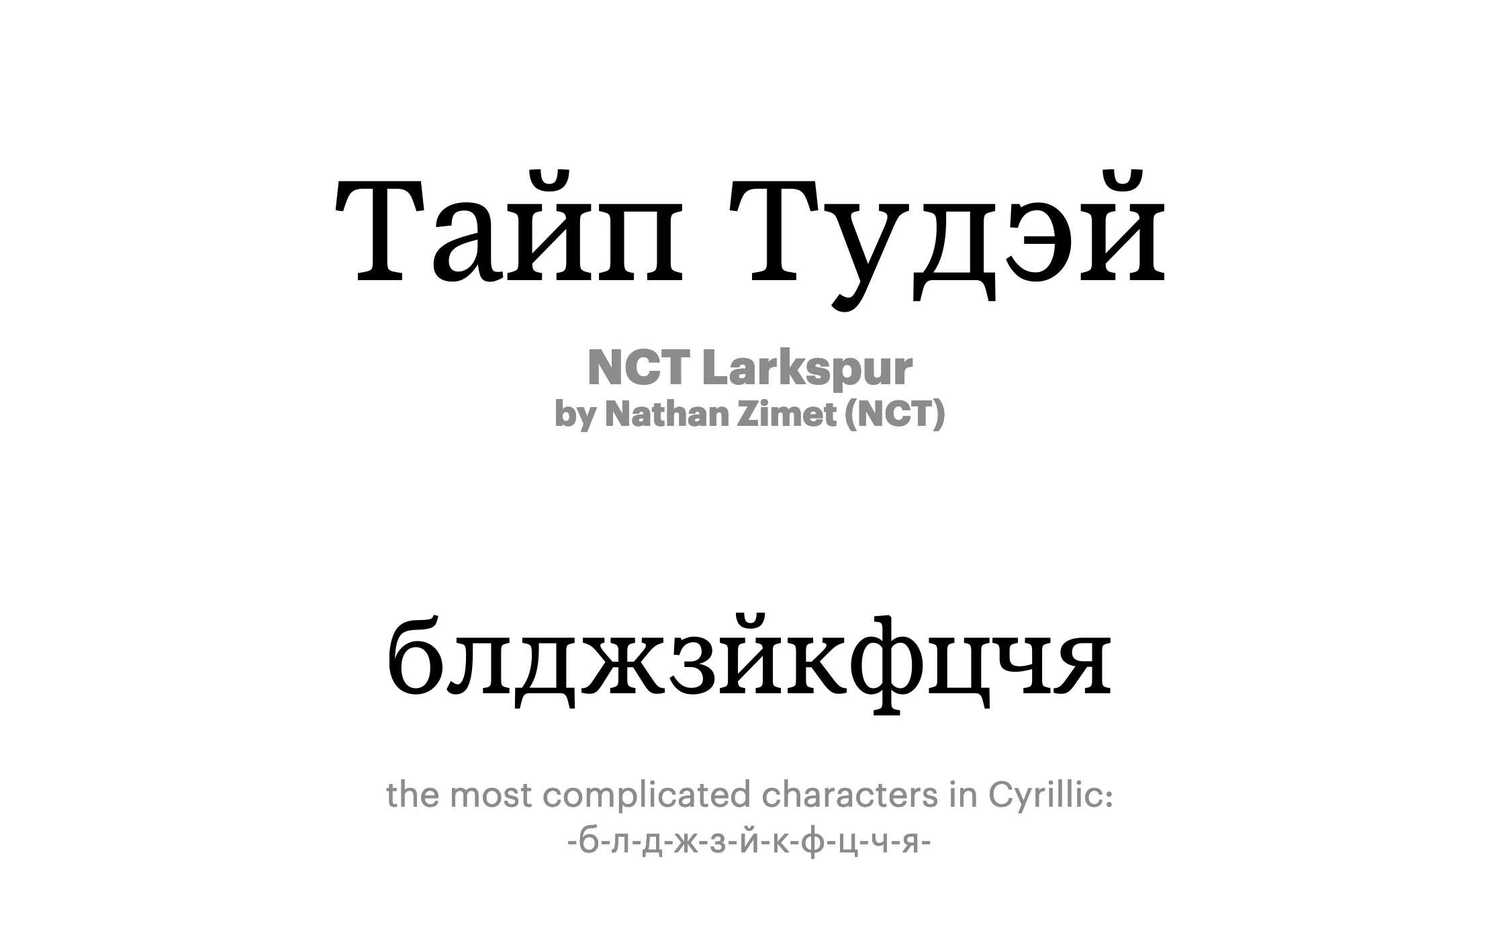 NCT-Larkspur-by-Nathan-Zimet-(NCT)